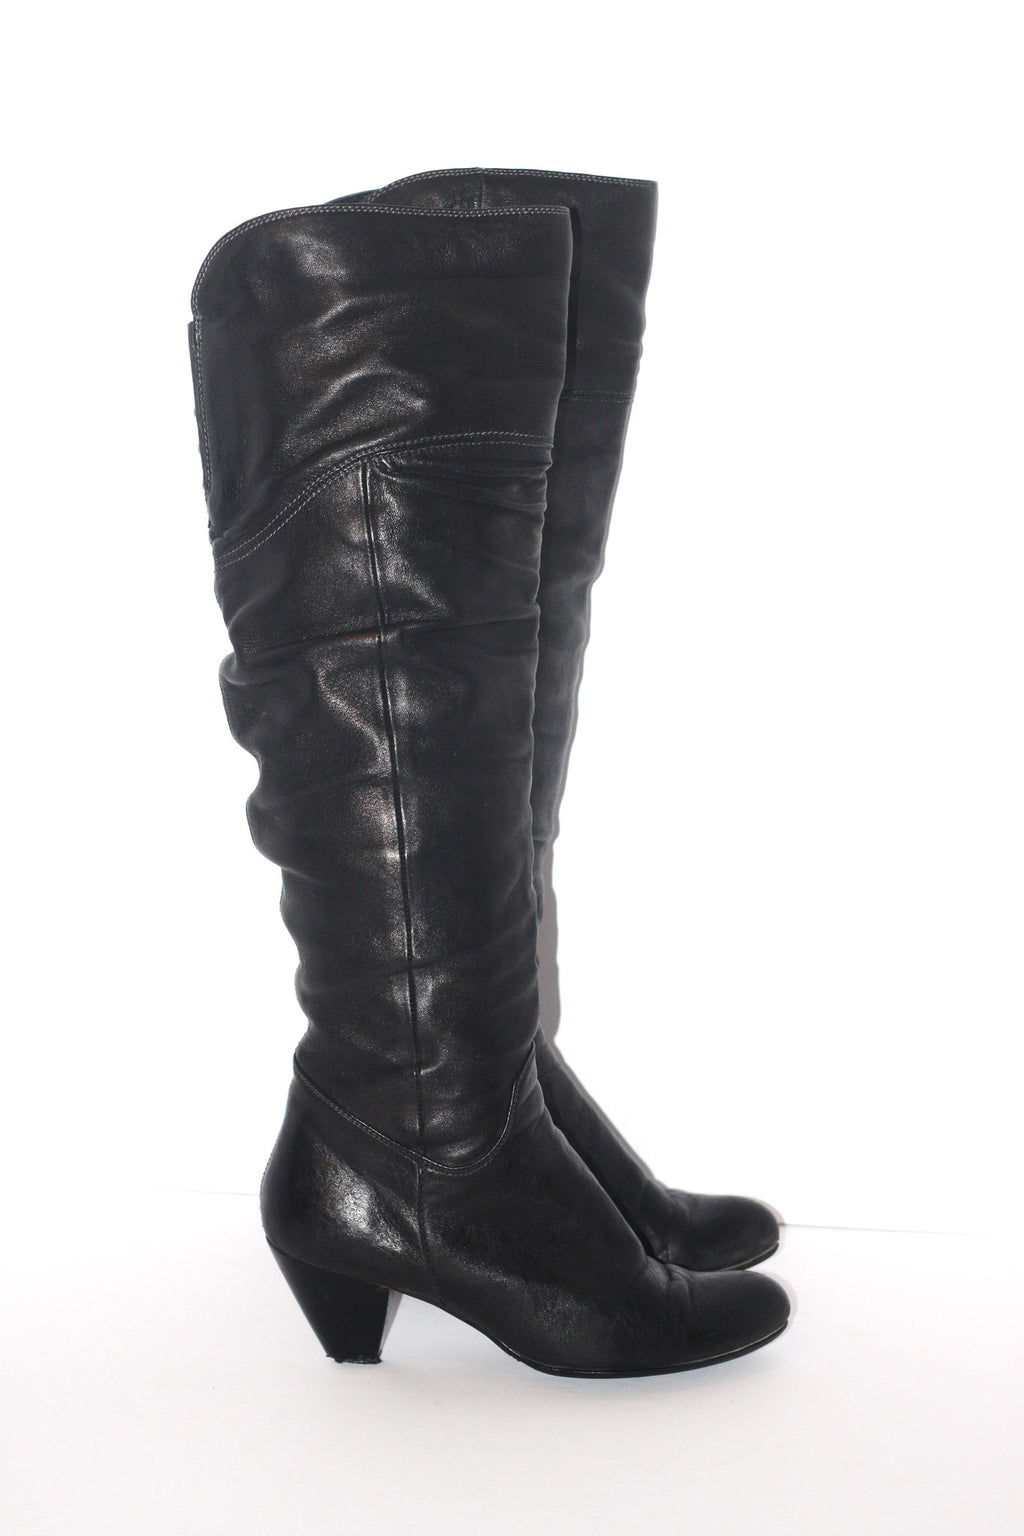 Arnold Churgin Black Tall Leather Boots - Joyce's Closet  - 1